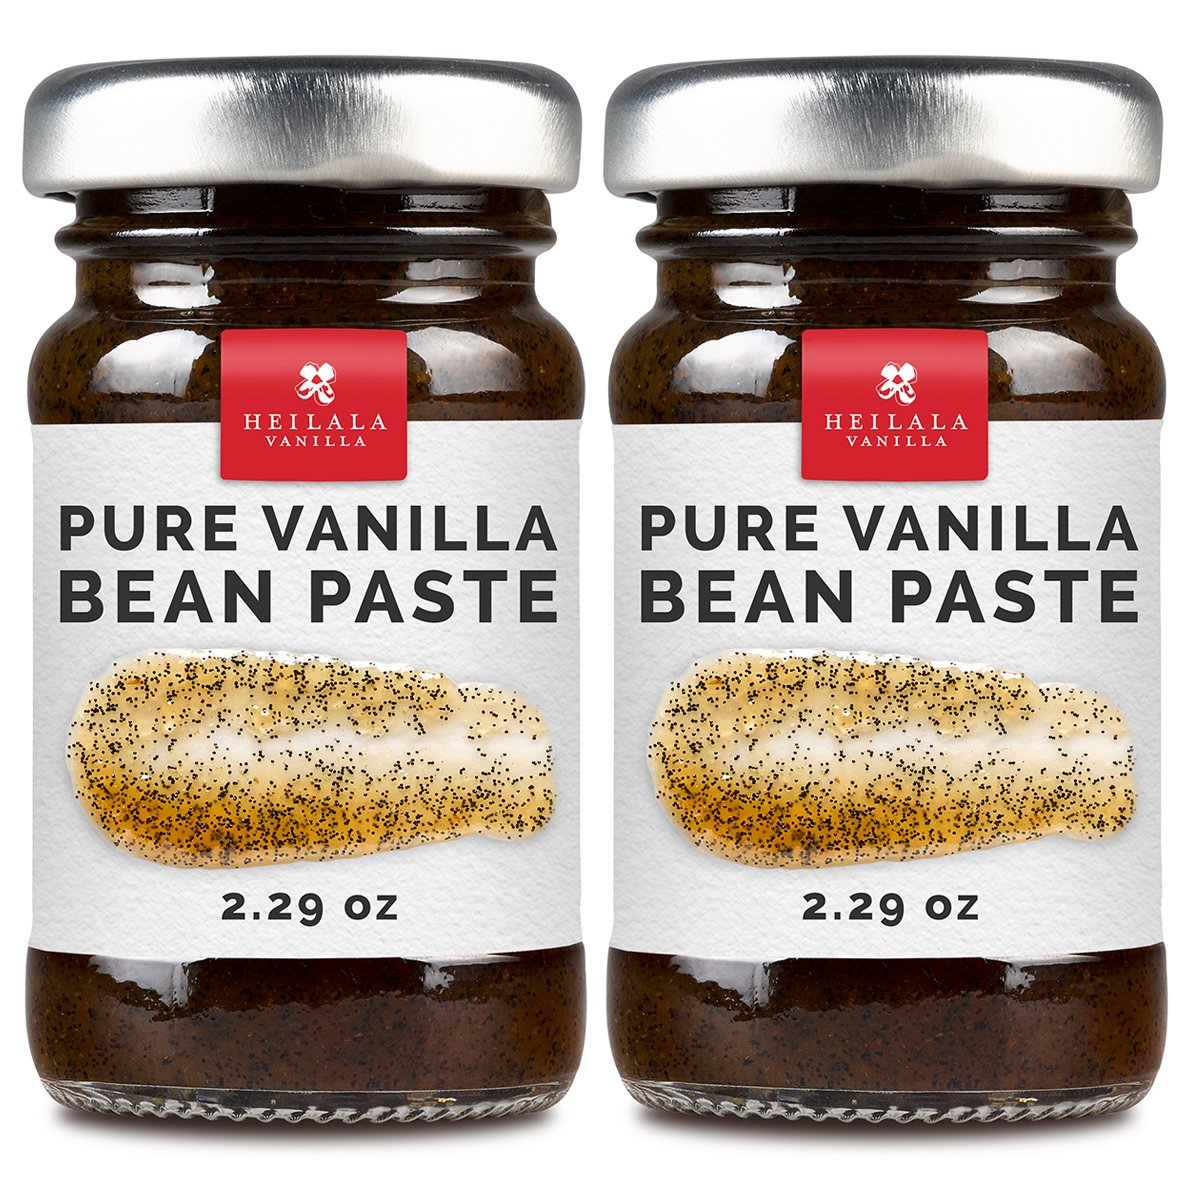 Vanilla Bean Paste for Baking - Heilala Vanilla, the Choice of the Worlds Best Chefs & Bakers, Using Sustainable, Ethically Sourced Vanilla, Multi-Award Winning, Hand-Picked from Polynesia, 2 Pack by Heilala